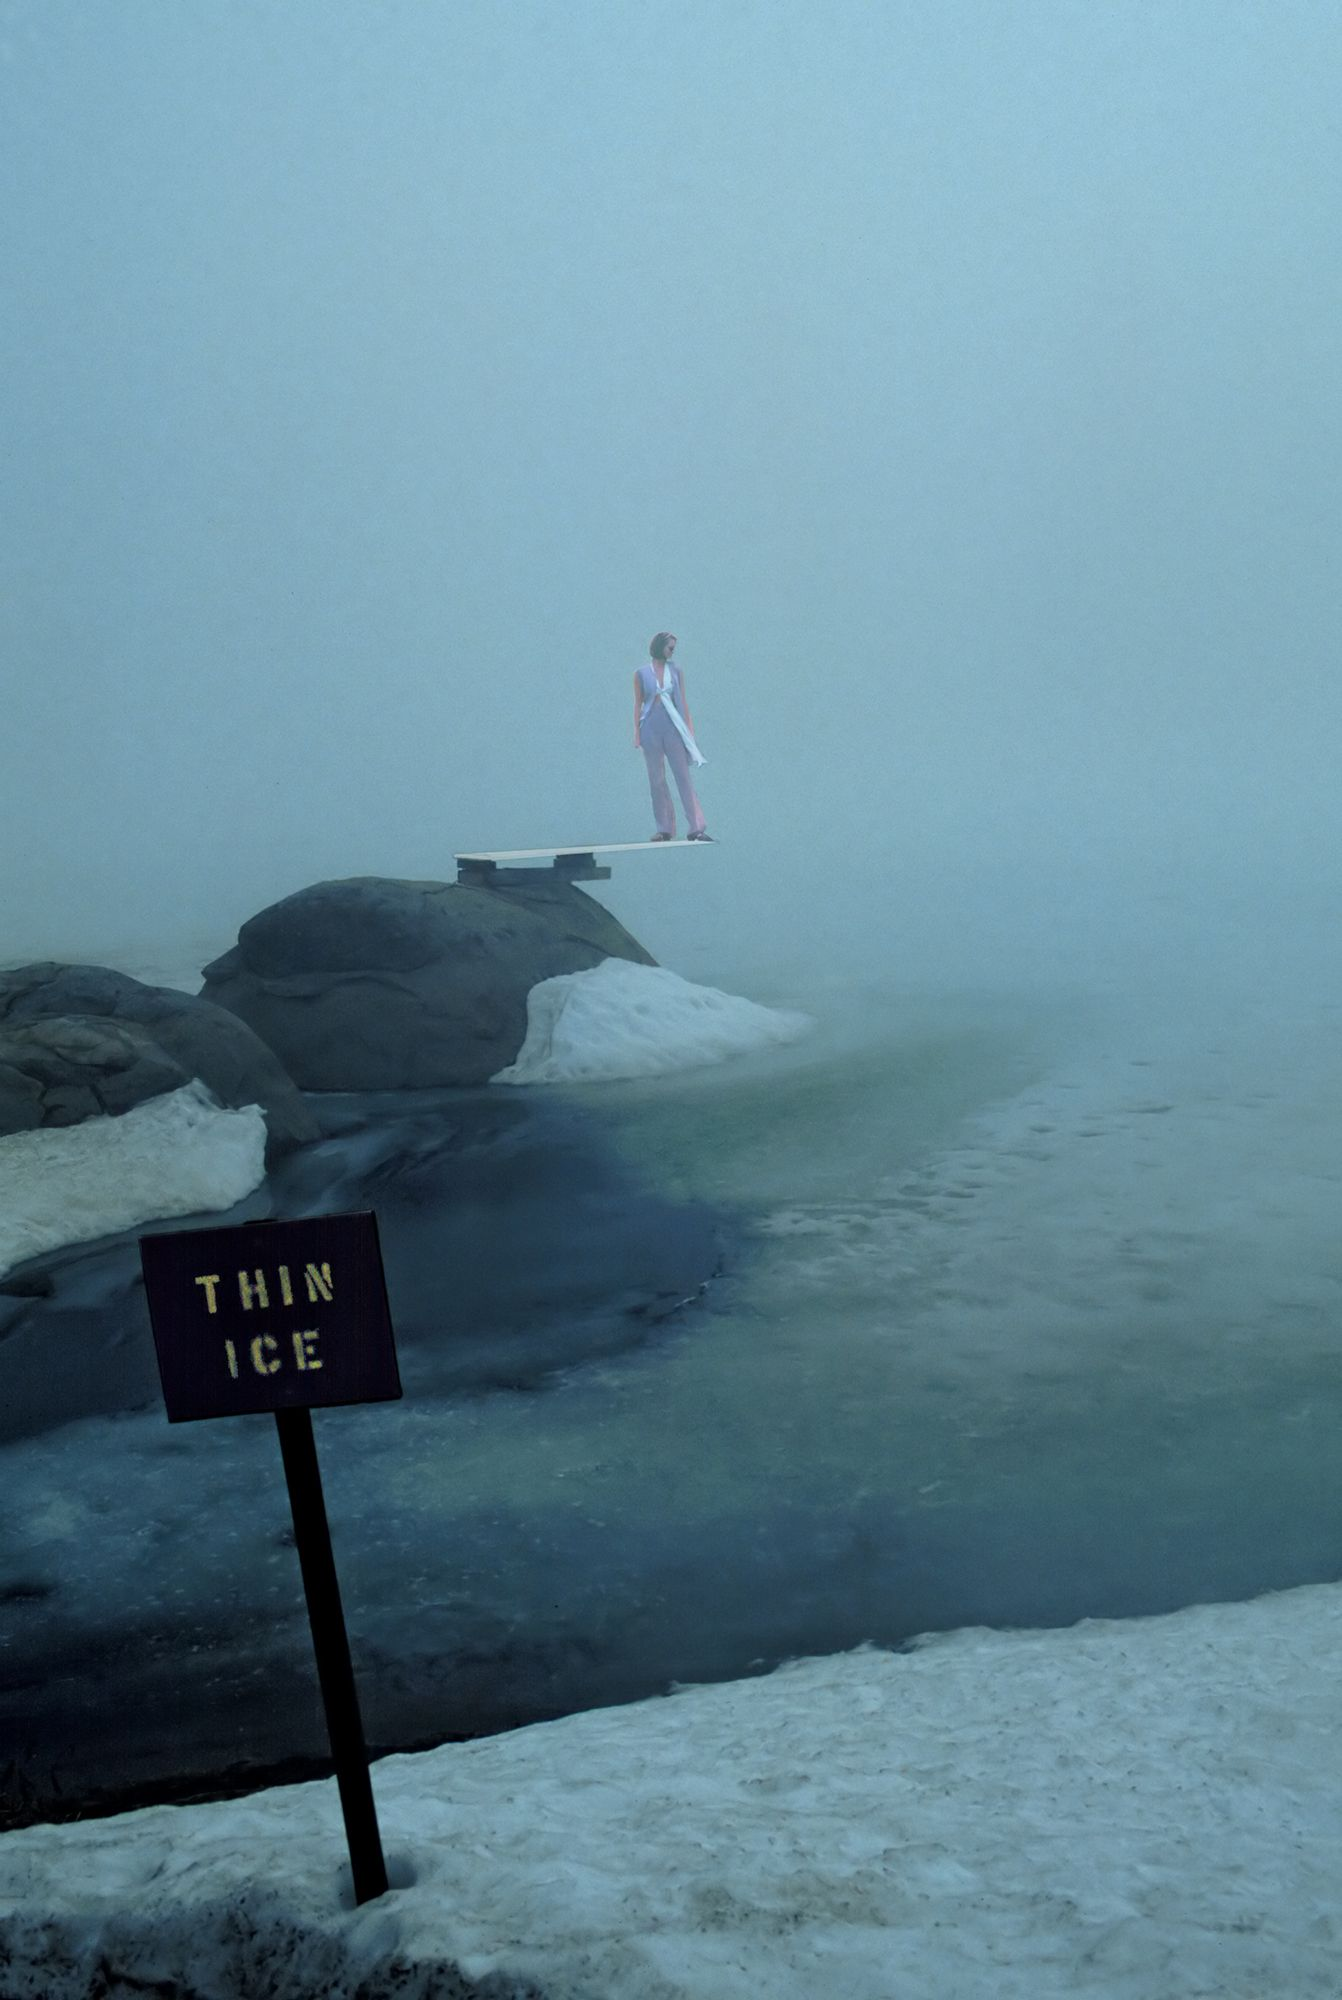 Thin Ice with woman  on diving board